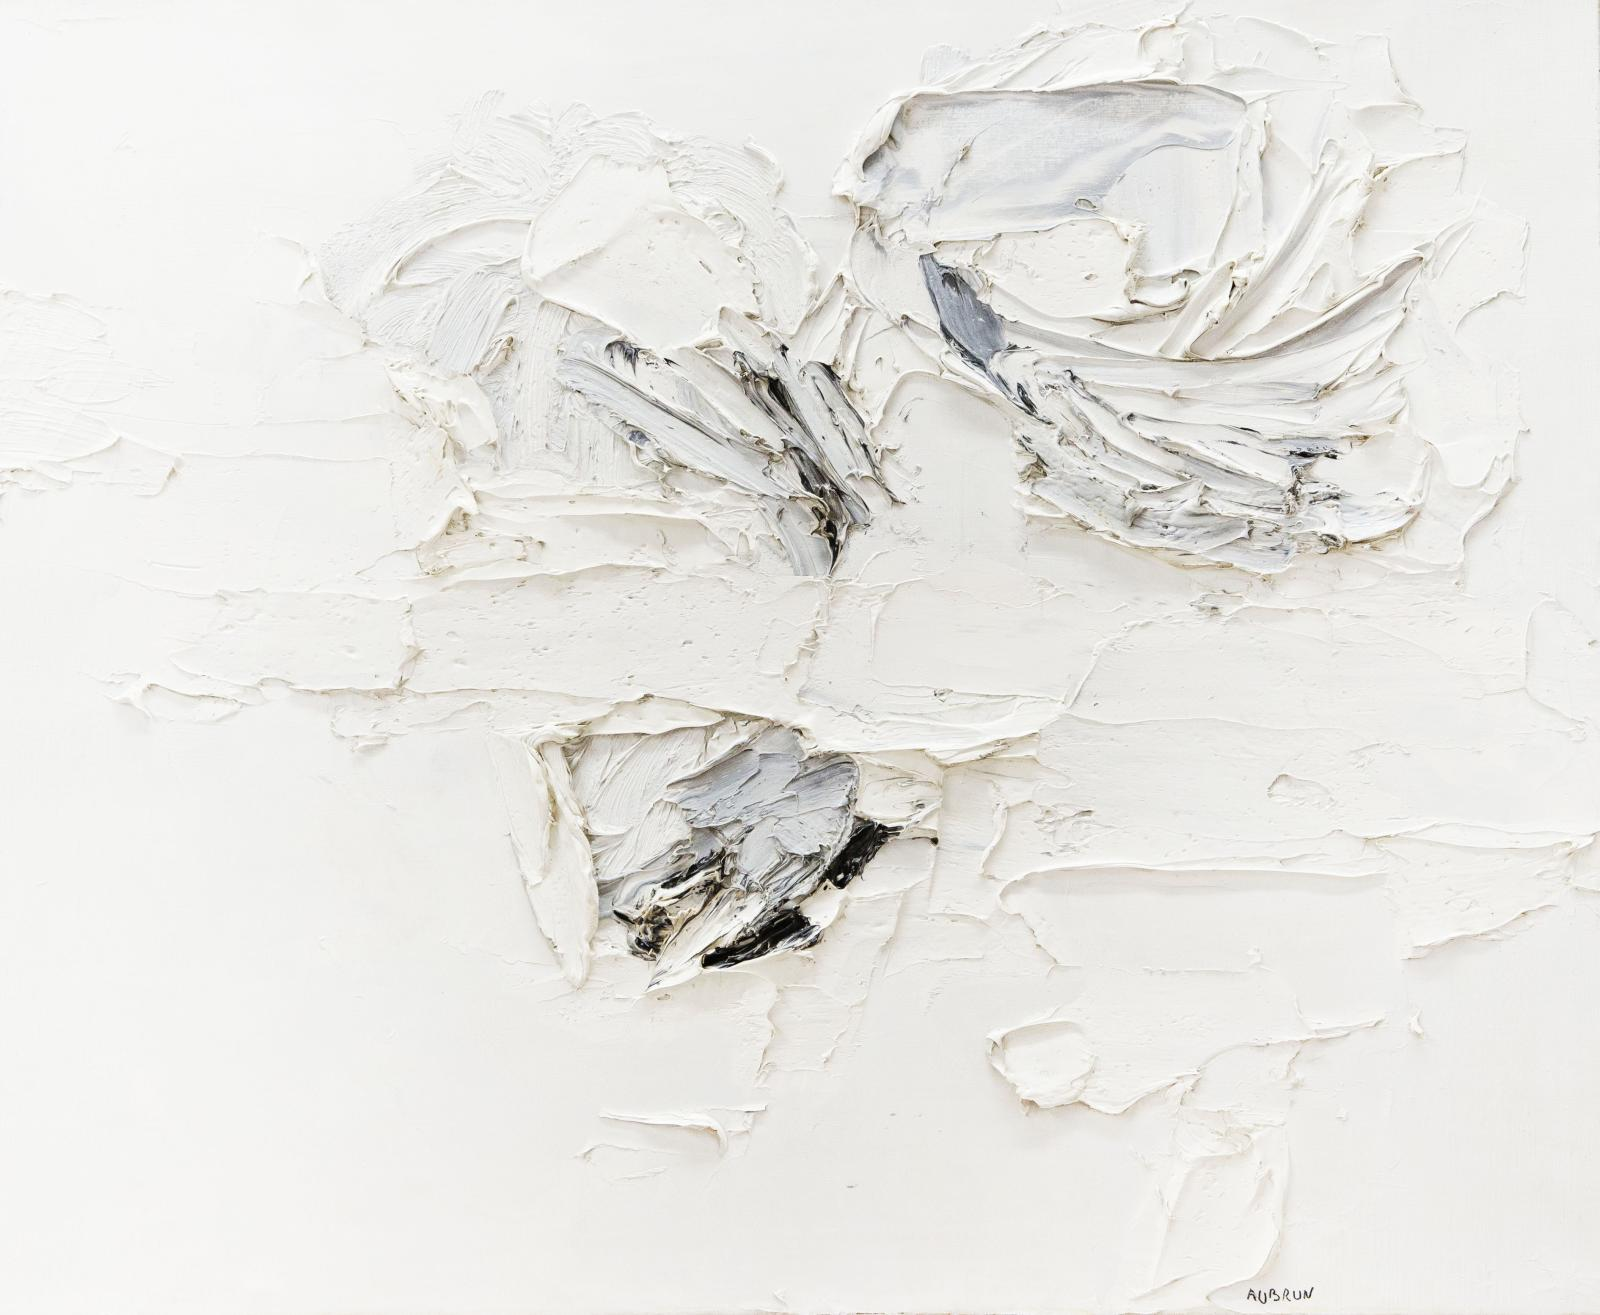 François Aubrun, Untitled #272, 1970